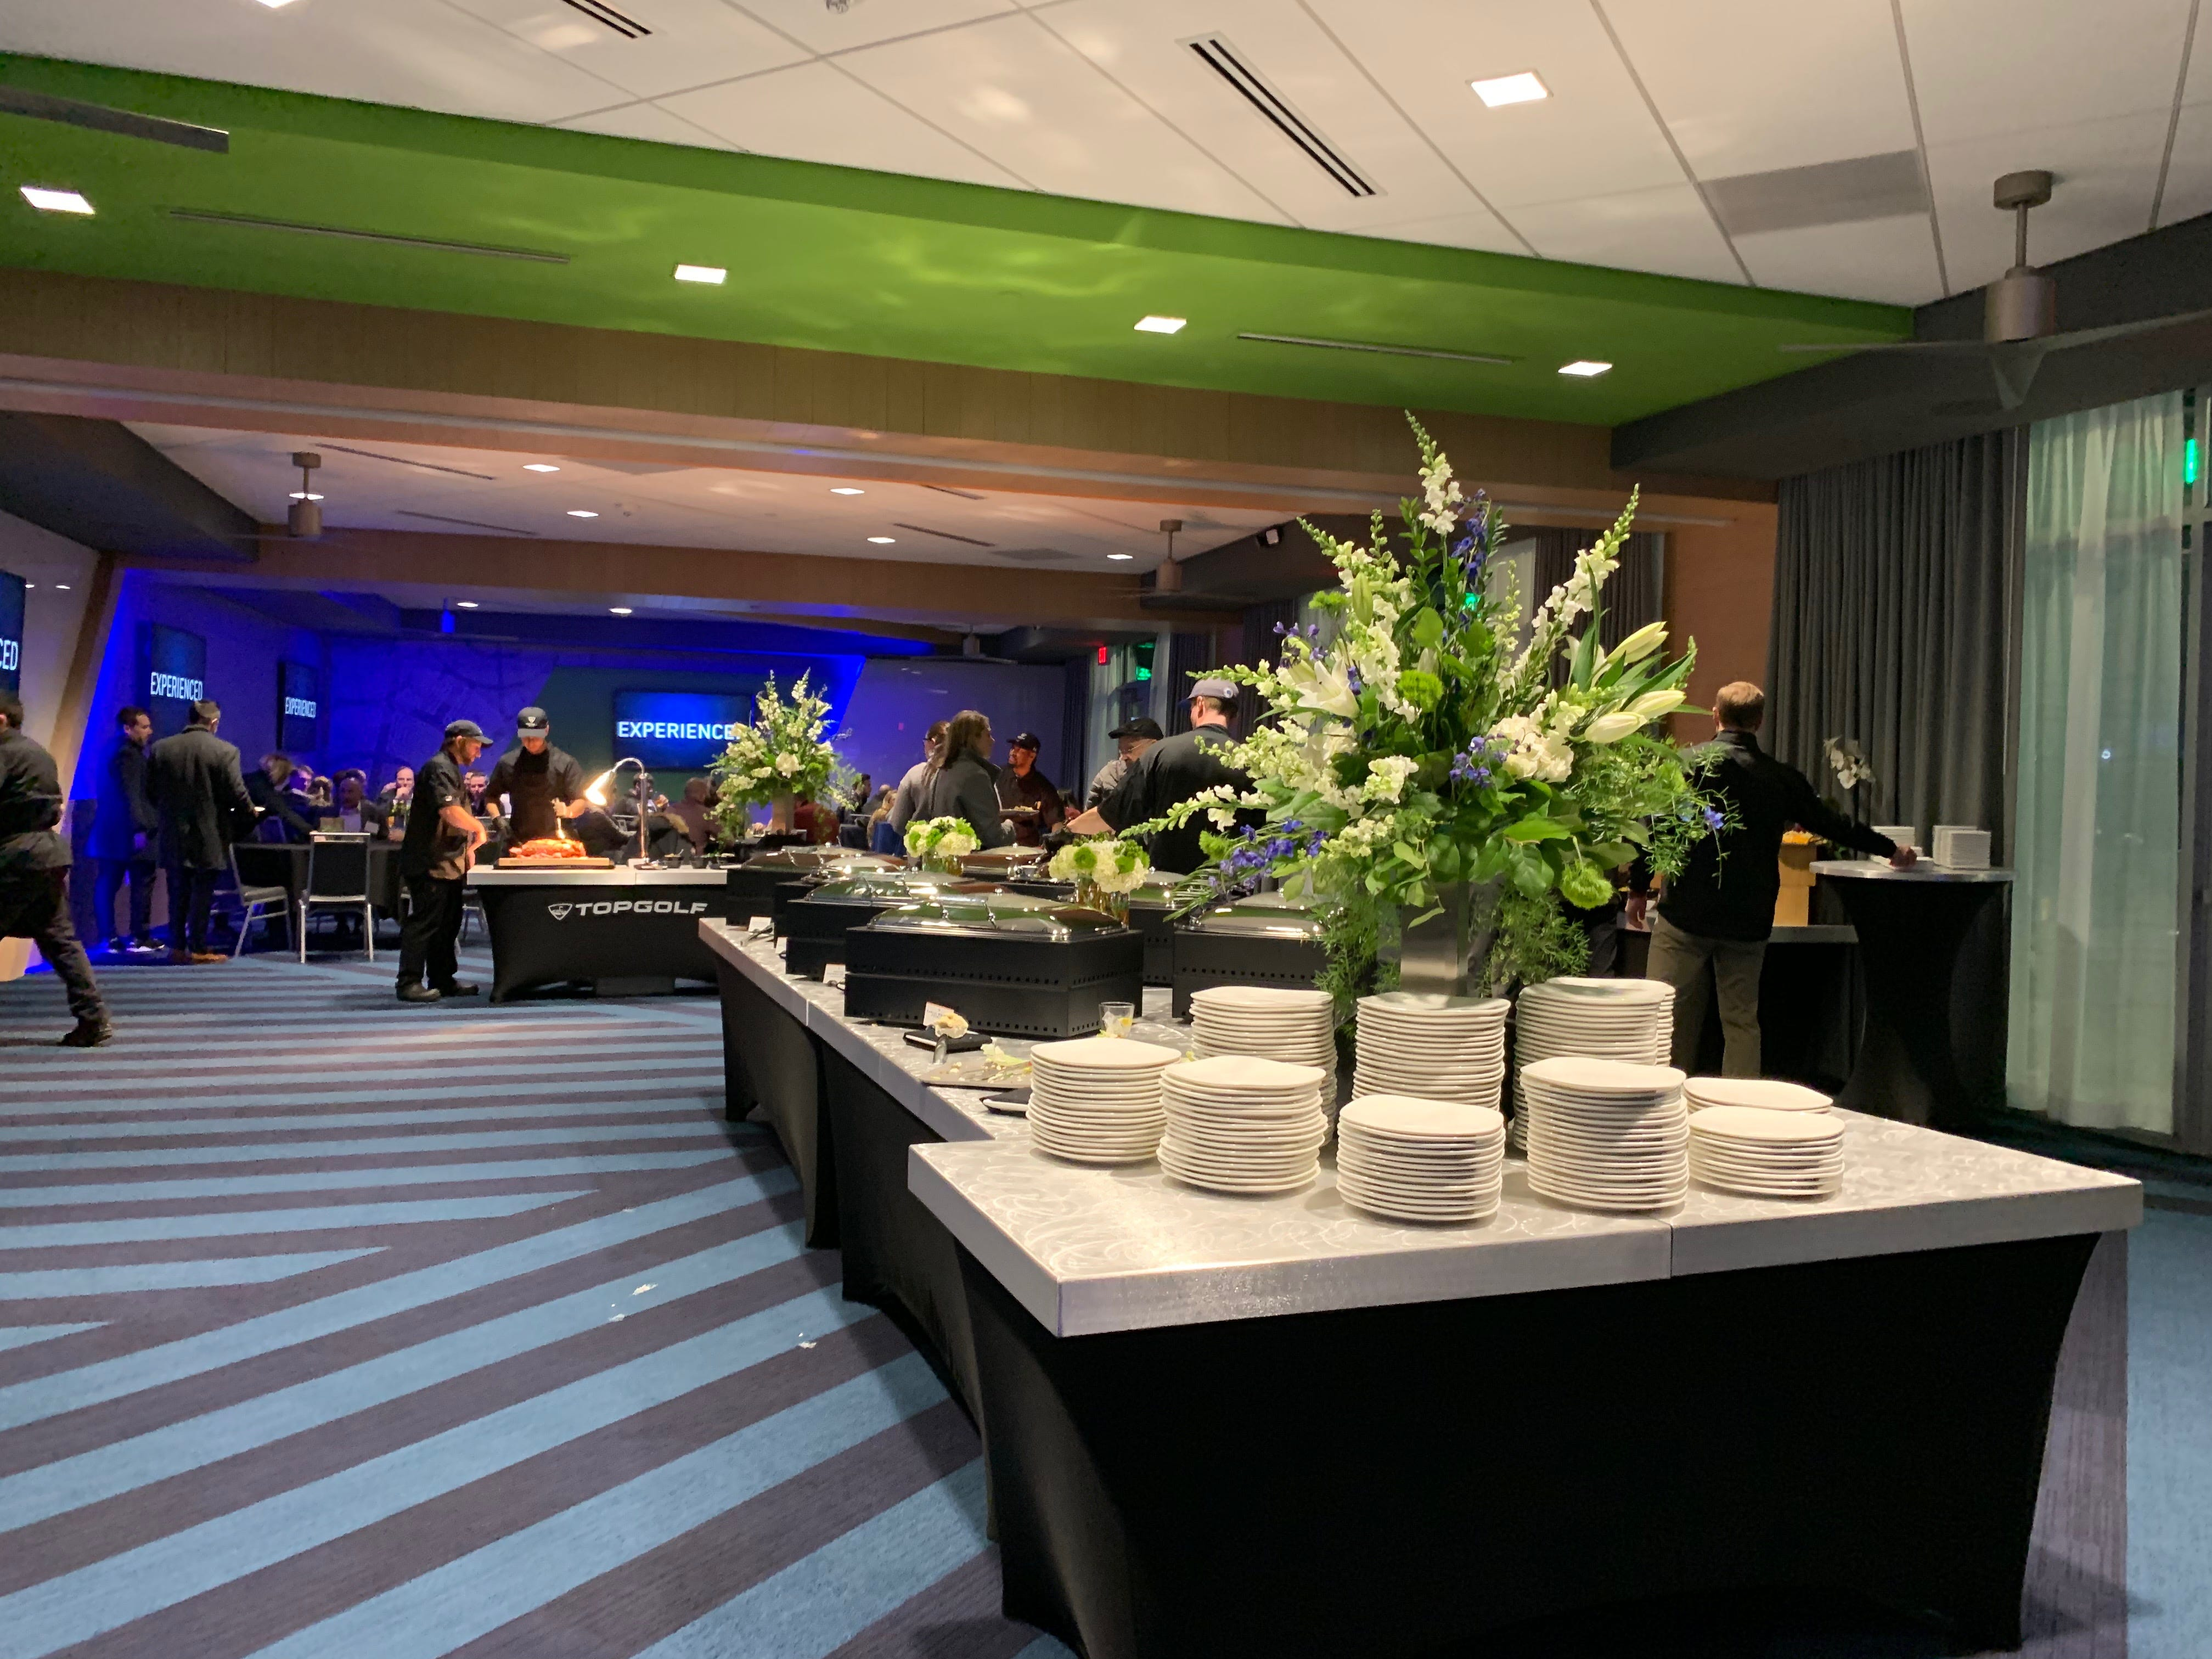 The party room for special events like, graduations, bachelor parties or corporate outings at the Topgolf Auburn Hills location on Wednesday November, 28, 2018.